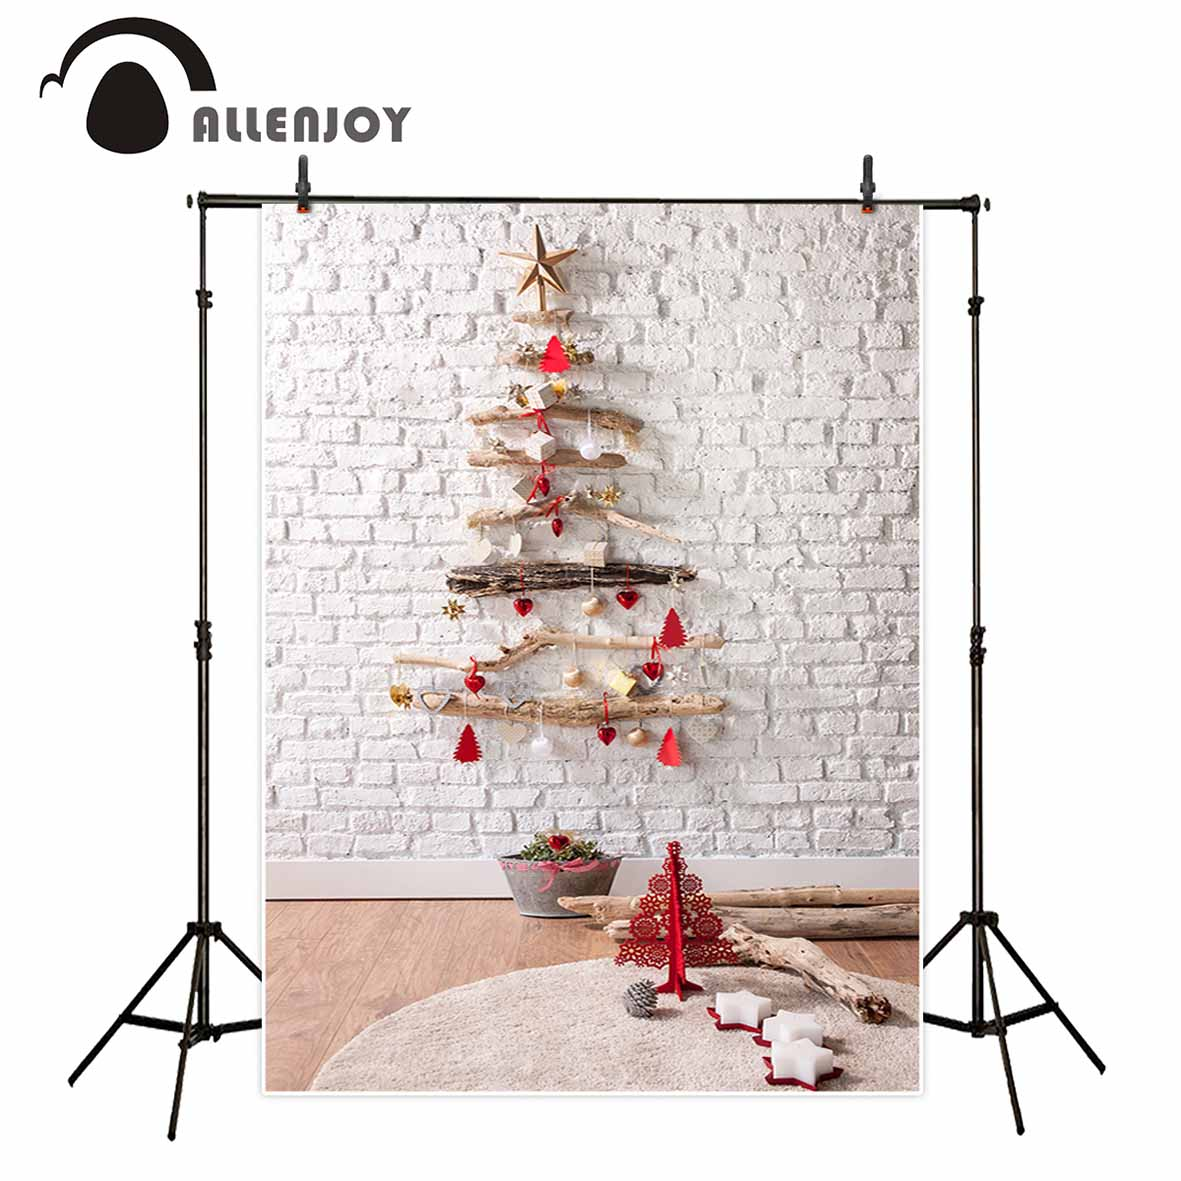 Allenjoy Christmas photography background white brick wall indoor children backdrop newborn photocall photobooth allenjoy christmas photography backdrop wooden fireplace xmas sock gift children s photocall photographic customize festive